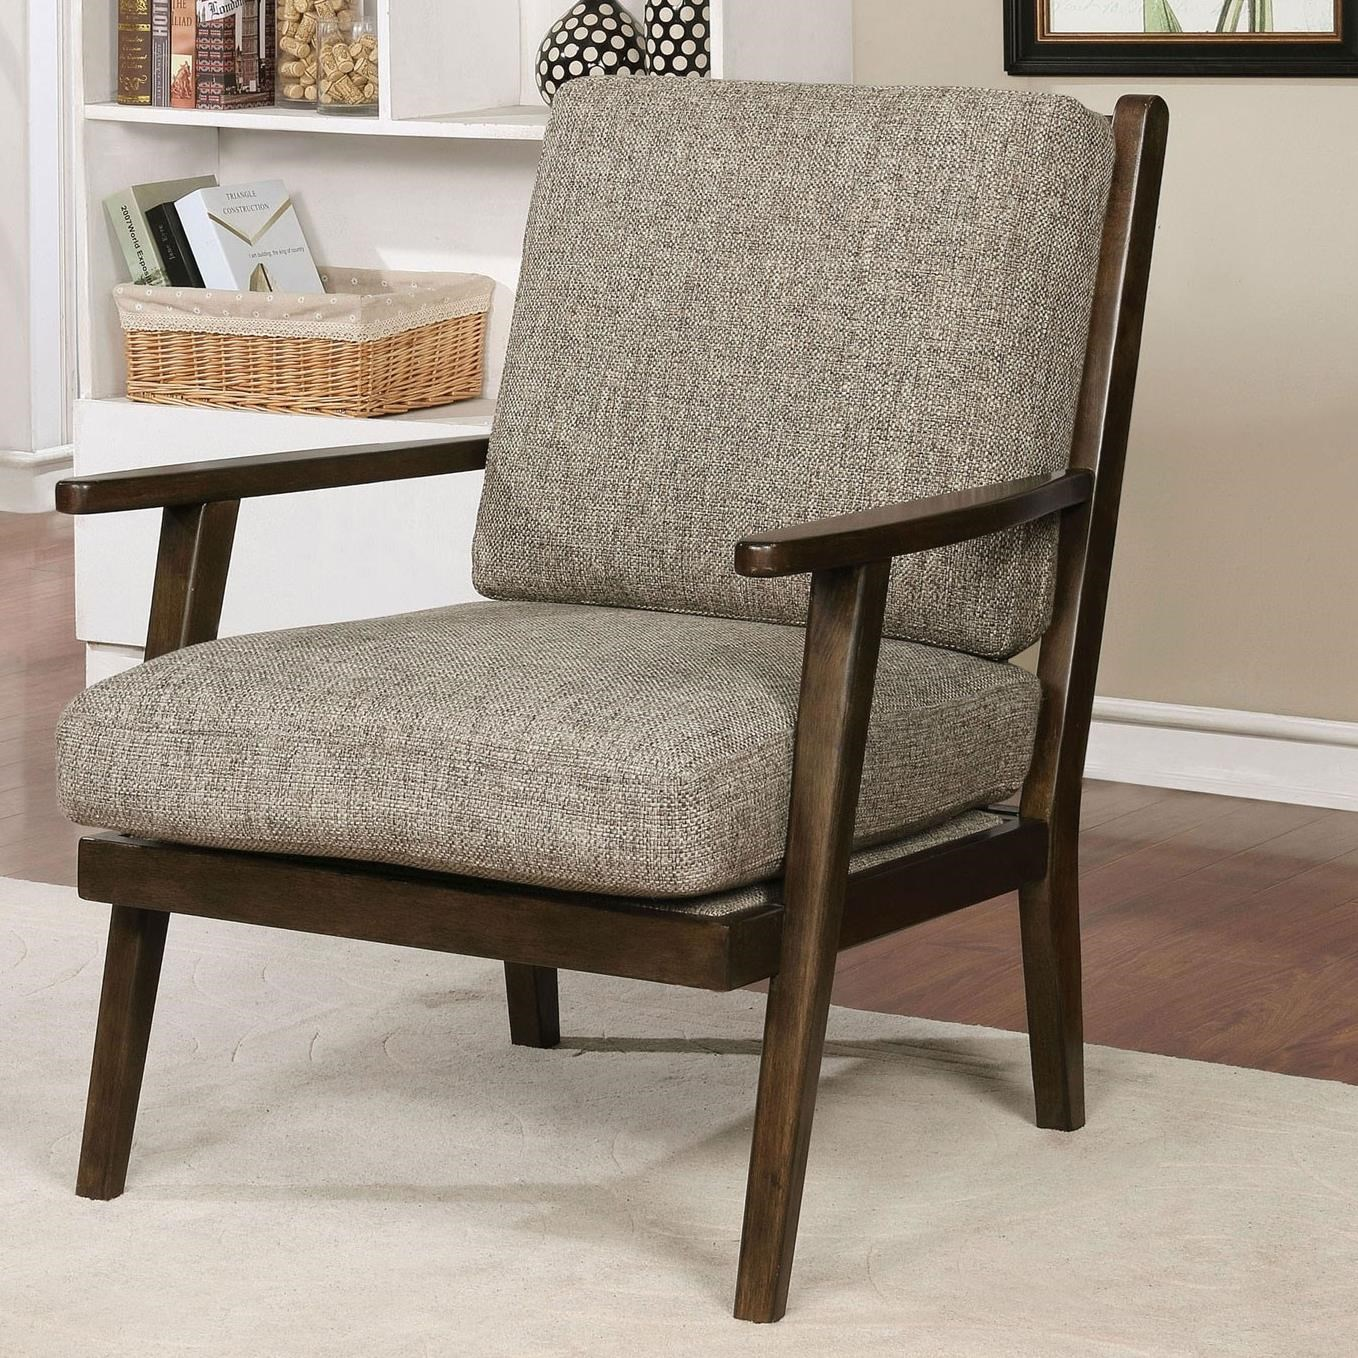 Mid Century Modern Accent Chair Eir Mid Century Modern Accent Chair With Exposed Wood By Furniture Of America At Rooms For Less